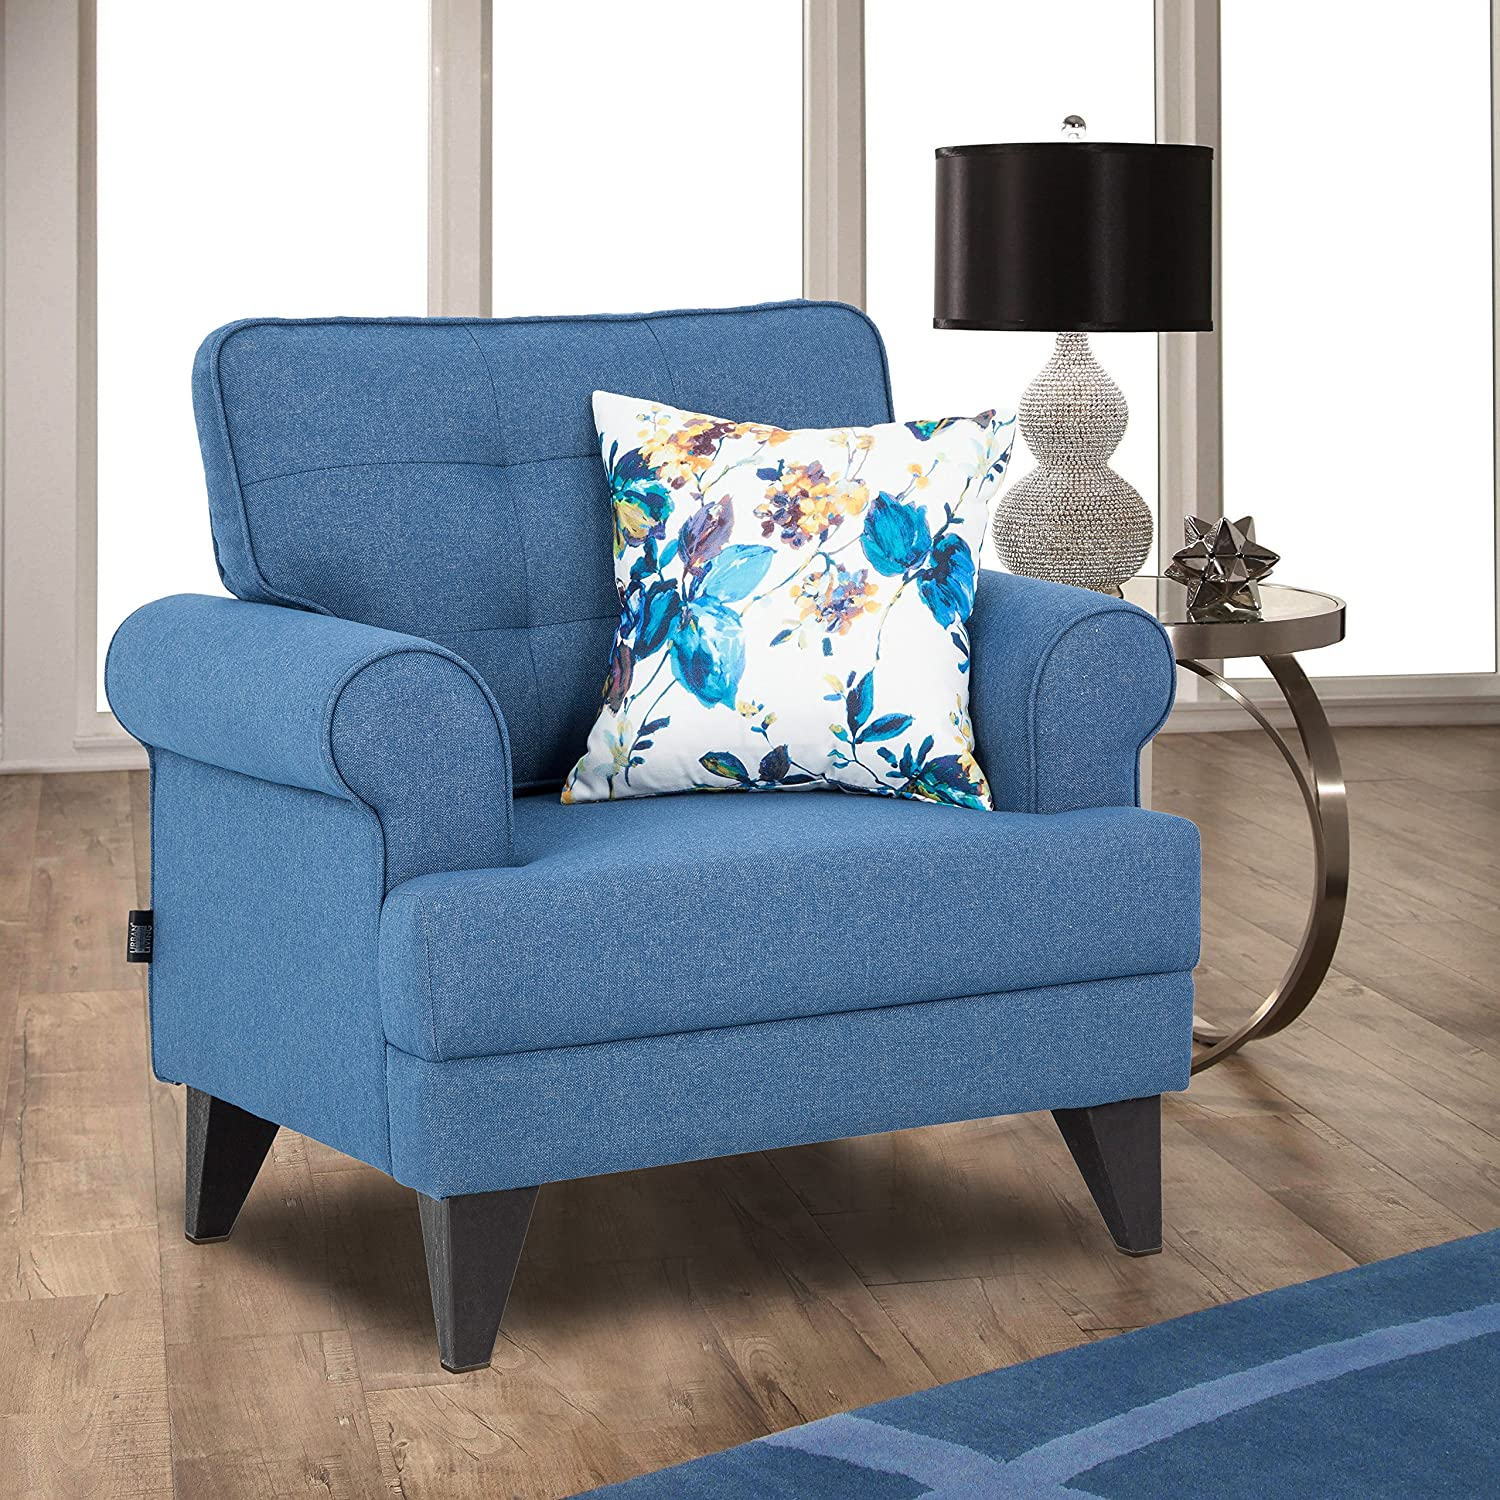 Hometown Pine Fabric Single Seater Sofa (Blue)